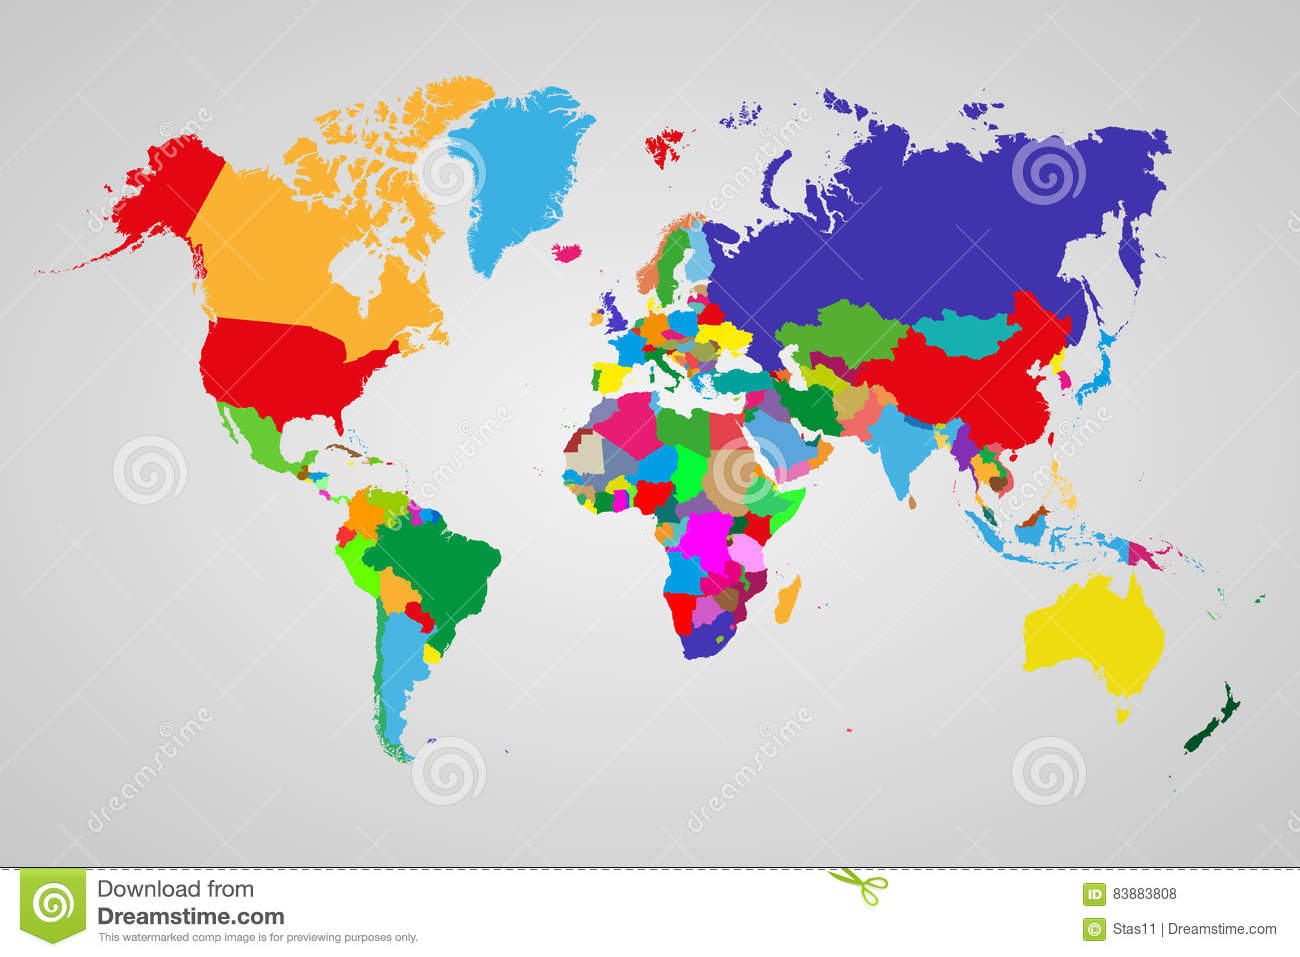 Colored Political World Map With Sovereign Countries And ... on topographic map, mappa mundi, thematic map,